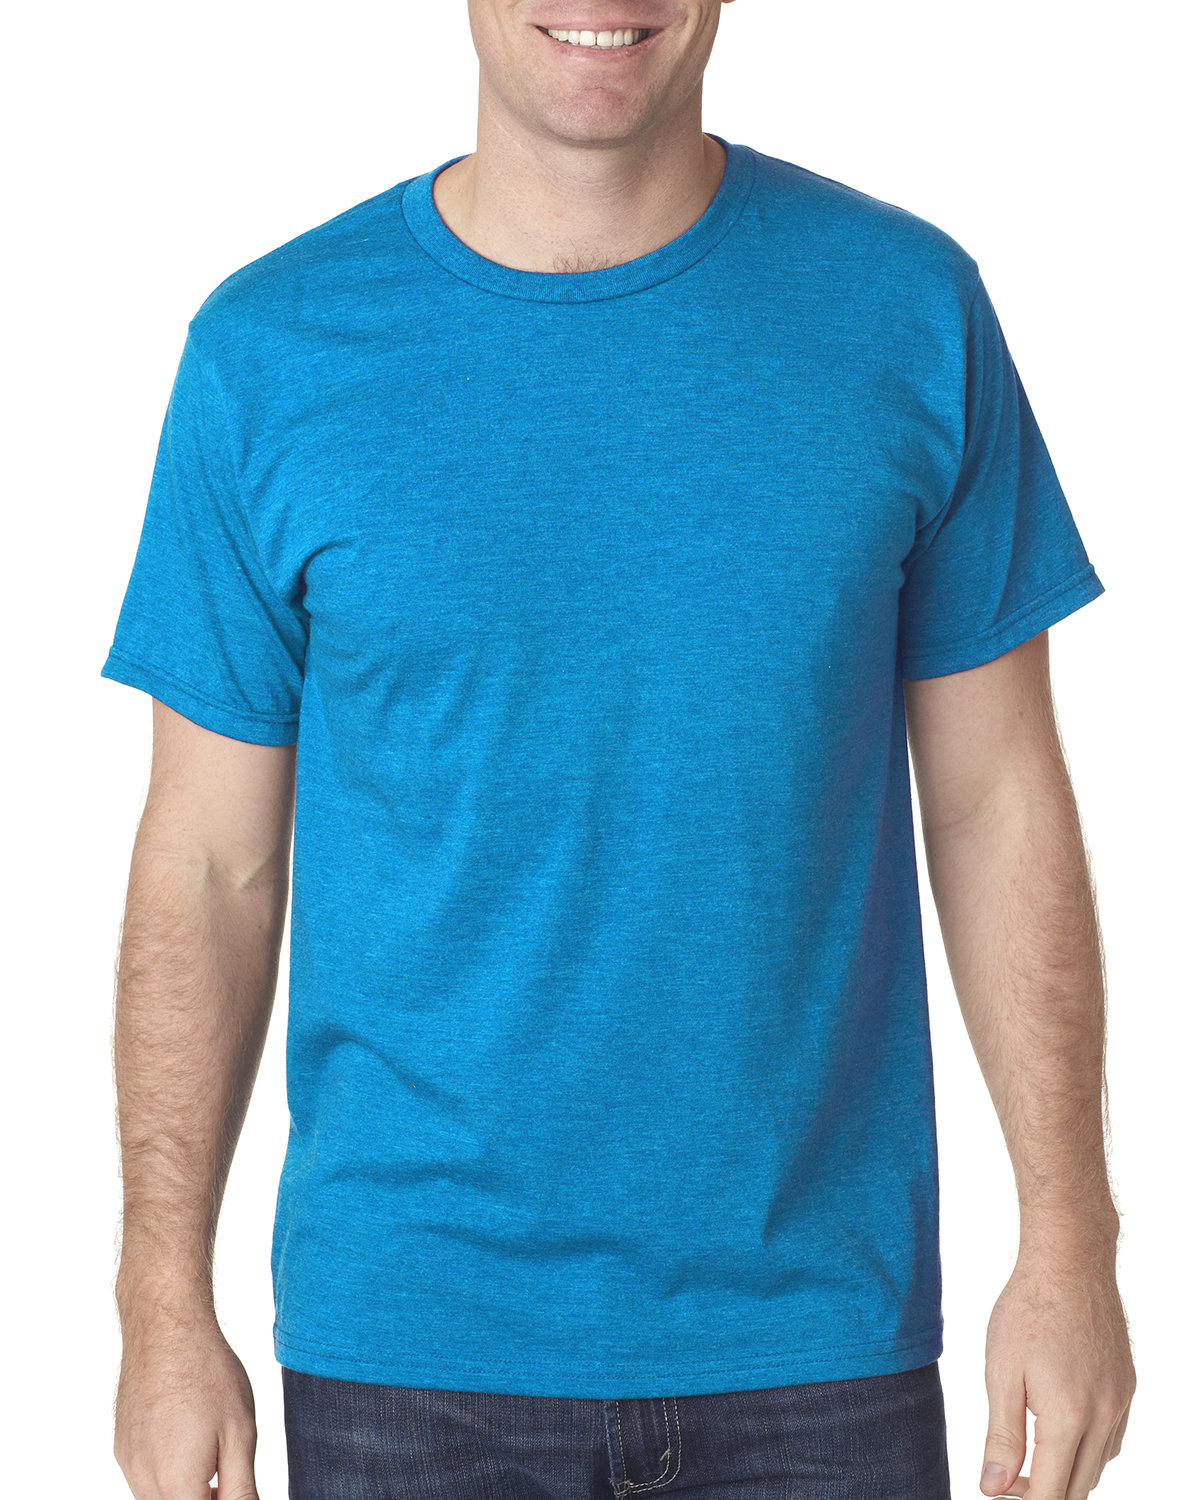 Bayside Adult Adult Heather Ring-Spun Jersey Tee HTHR TURQUOISE